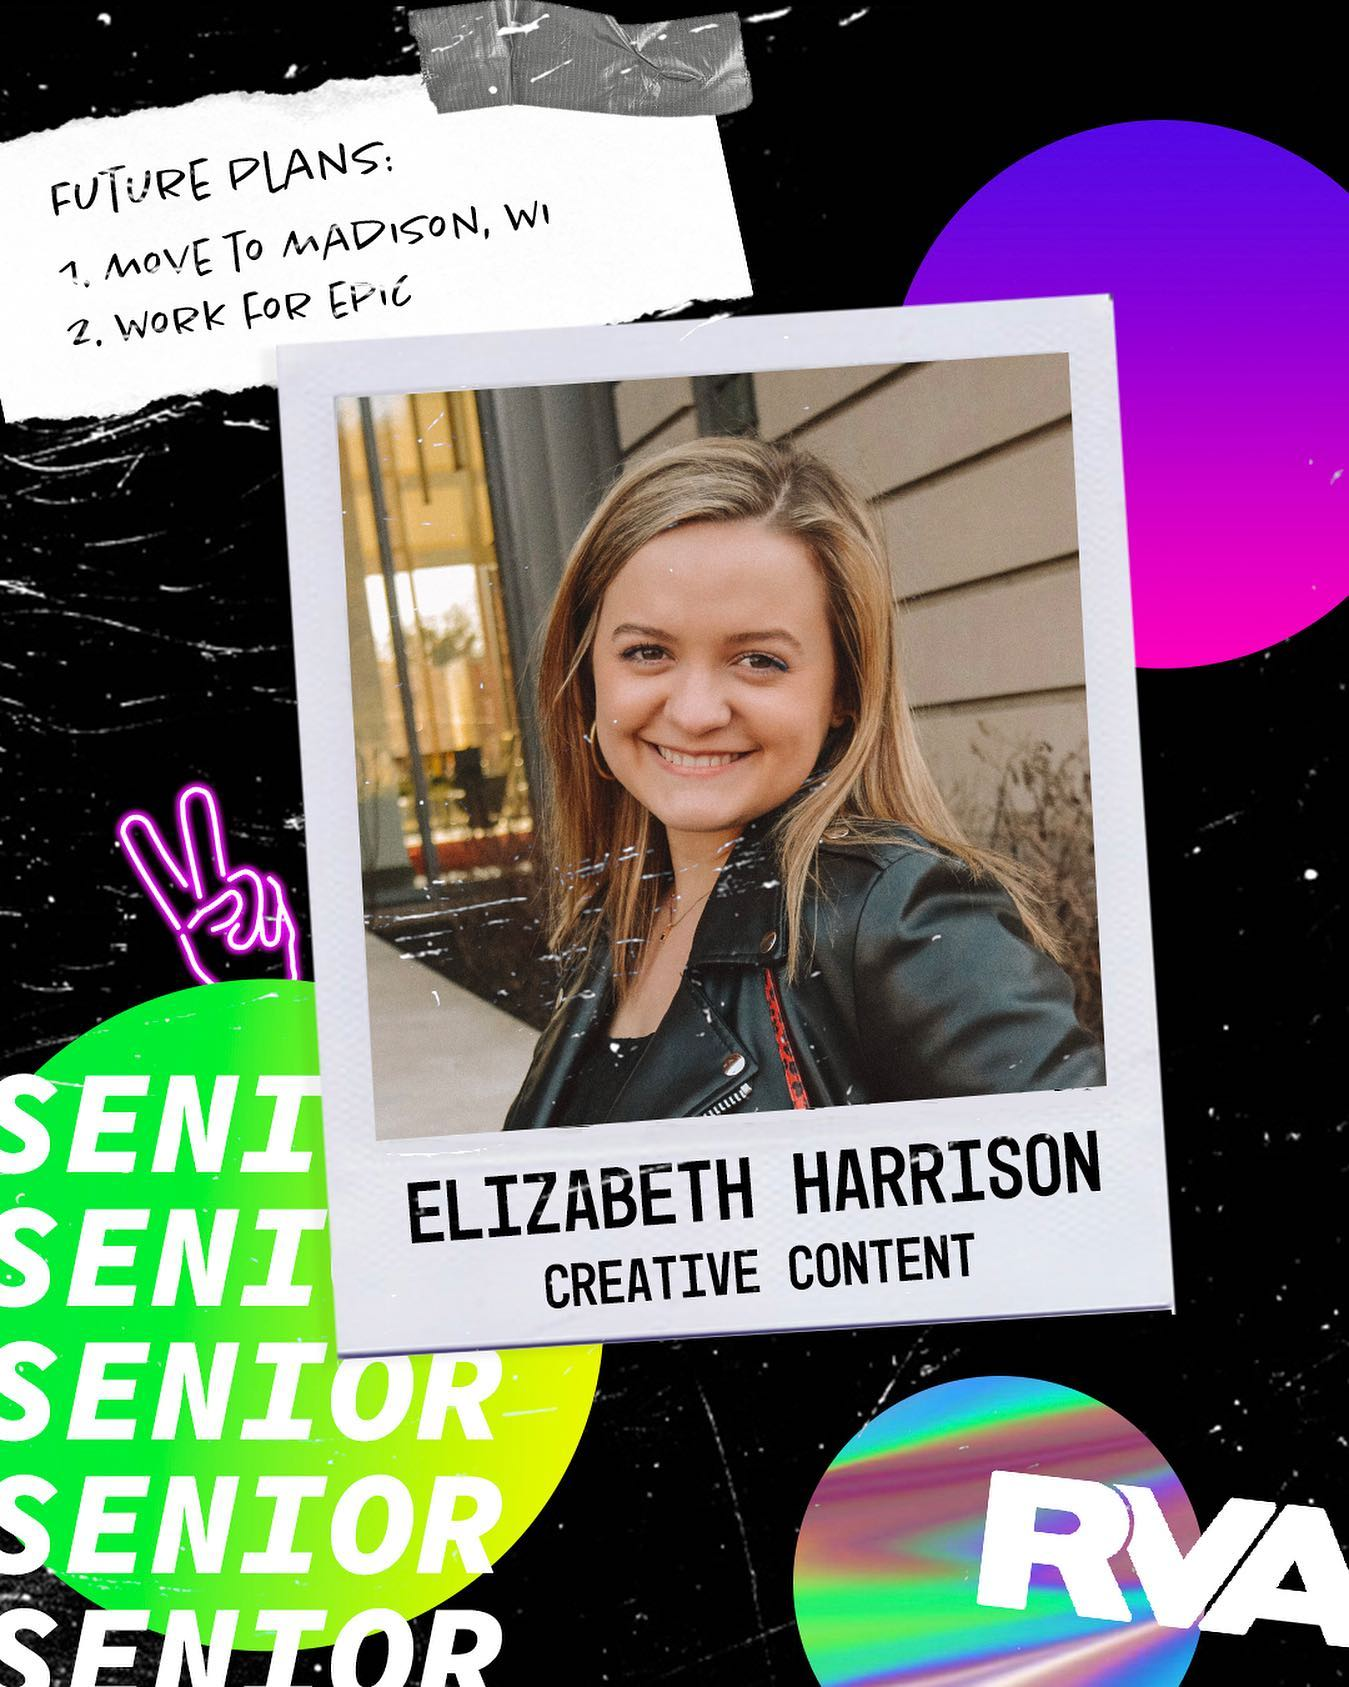 SENIOR SPOTLIGHT 🔦 Elizabeth is graduating with a BA in Global Studies & Business Administration! Have fun in Madison, WI! #TLCSeniors